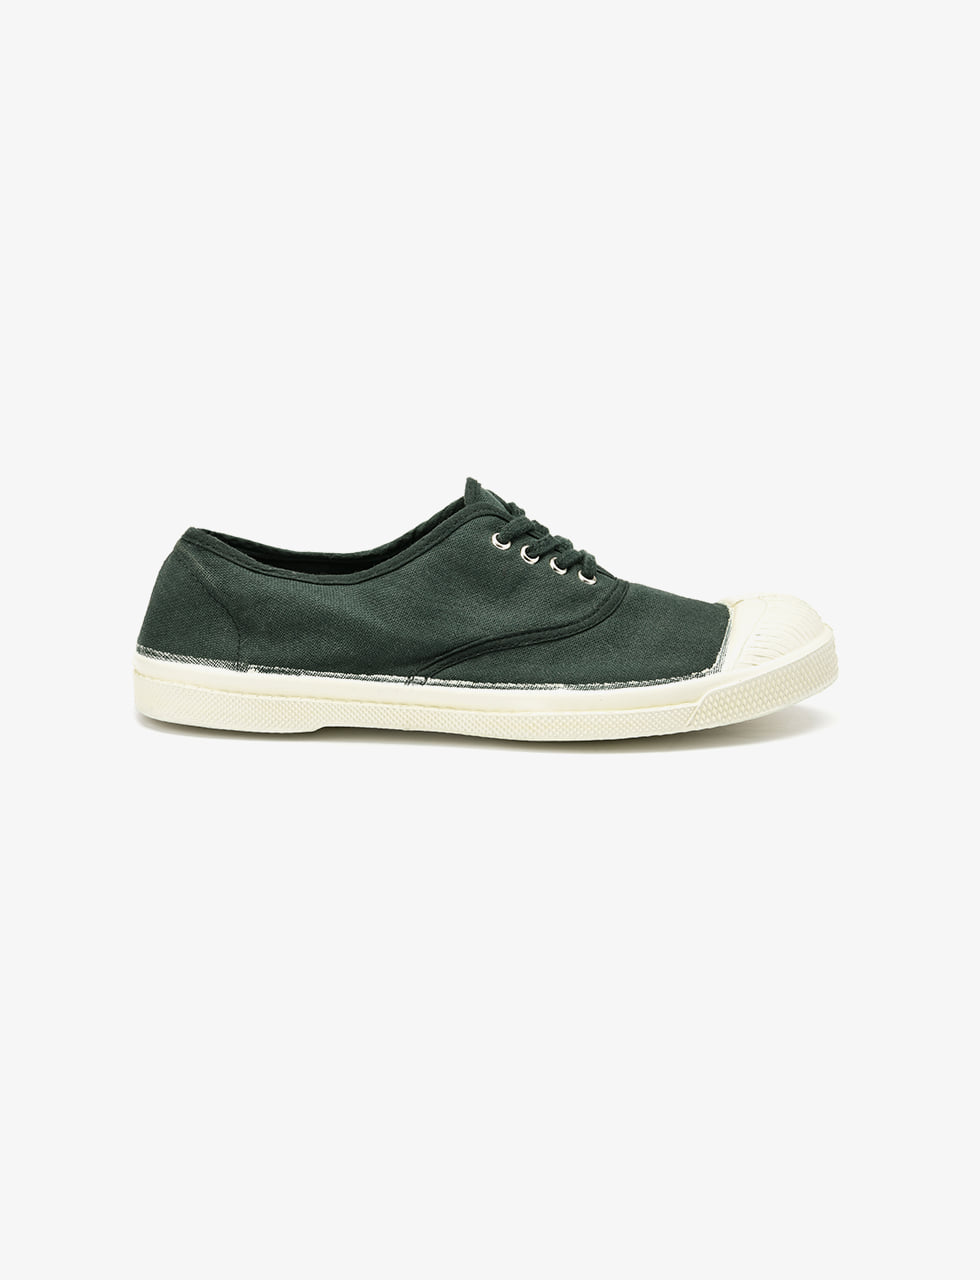 [Woman Lacet] Dark green